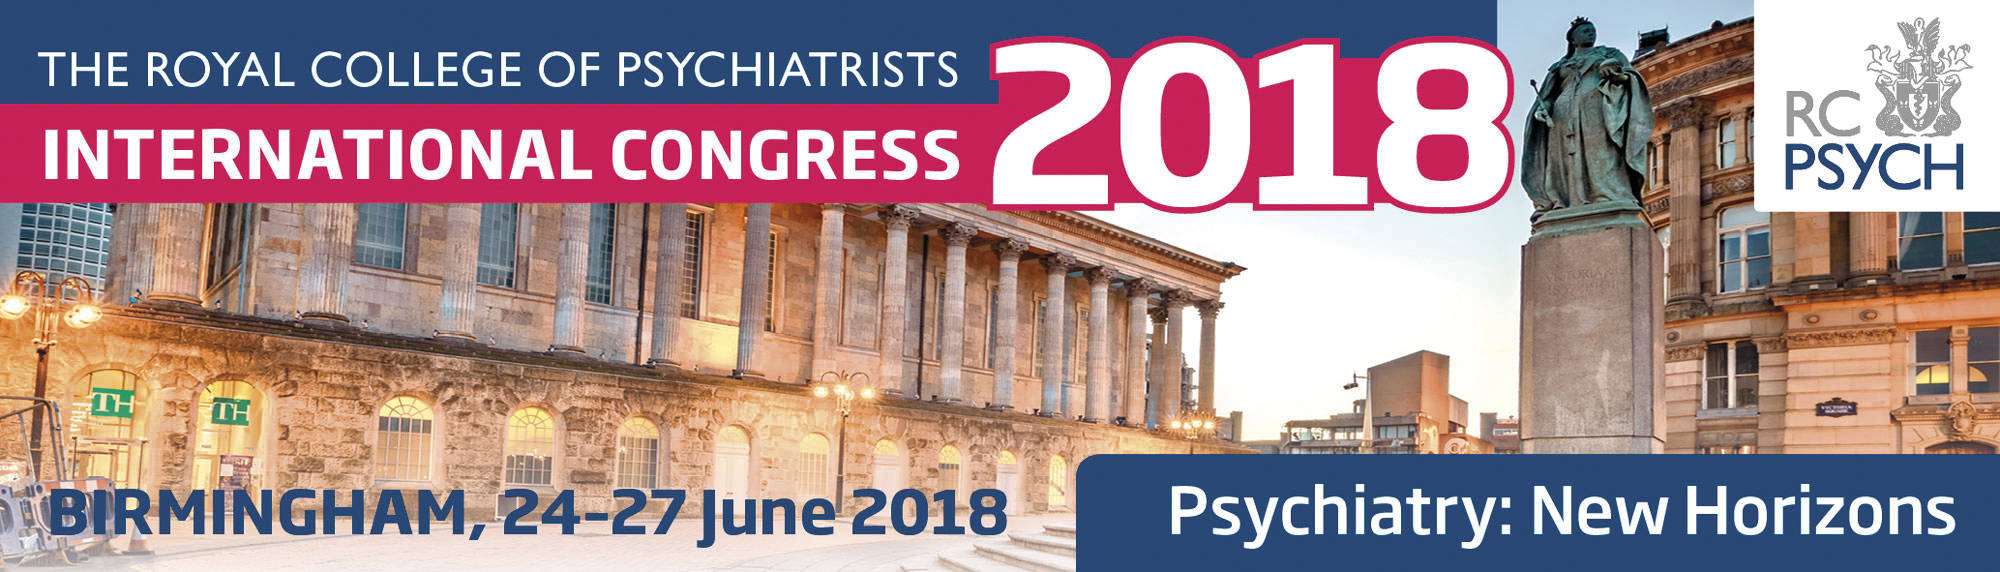 Royal College of Psychiatrists Congress